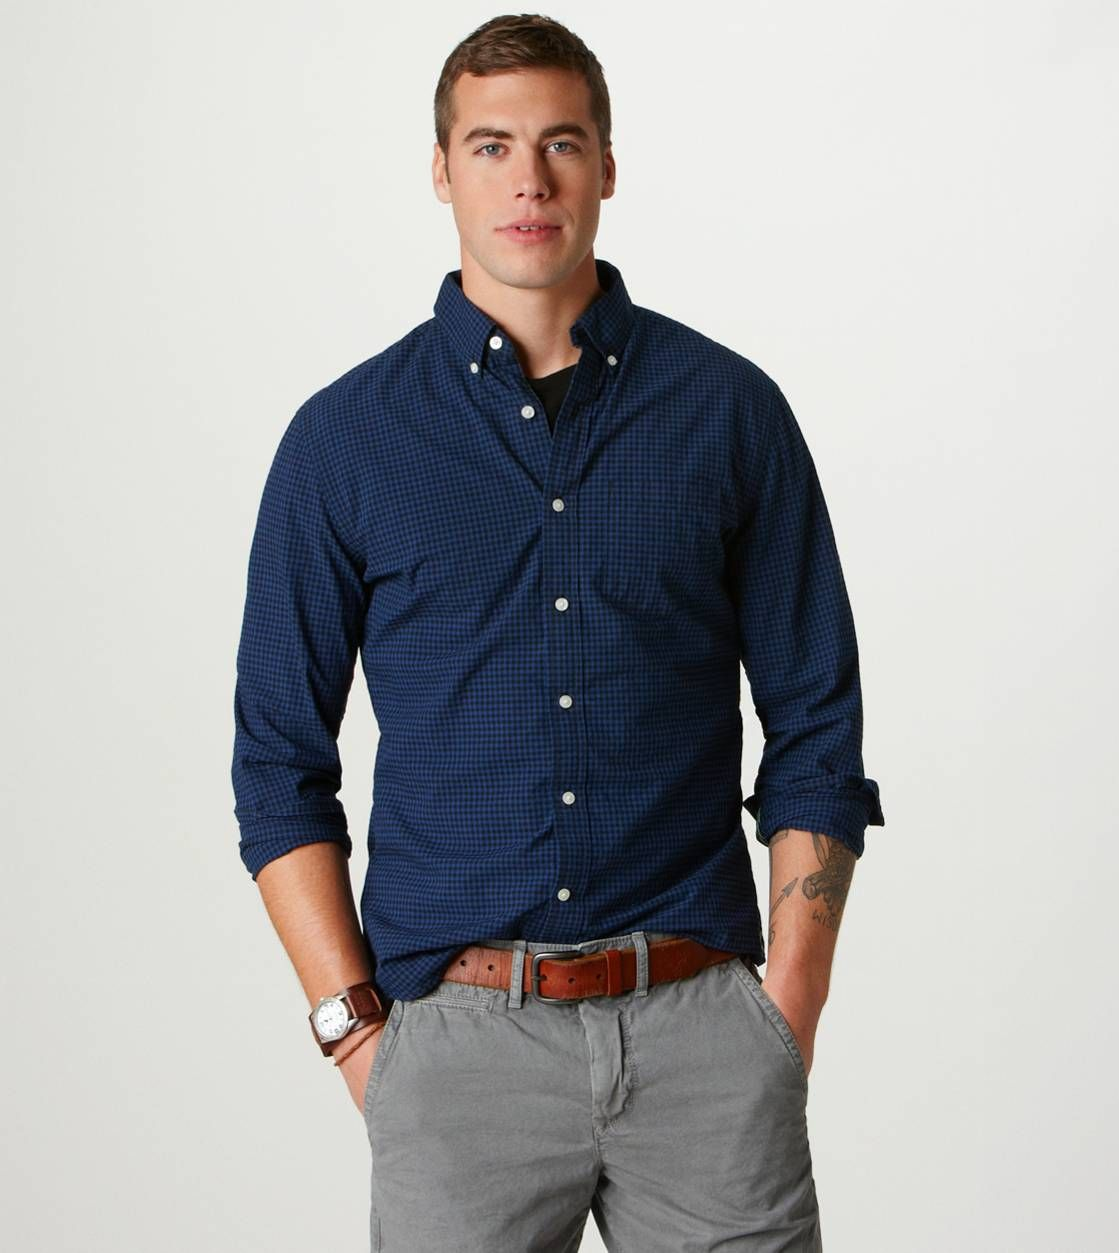 What Goes With Gray: AE Plaid Button-Down In Blue Goes Great With Grey Pants